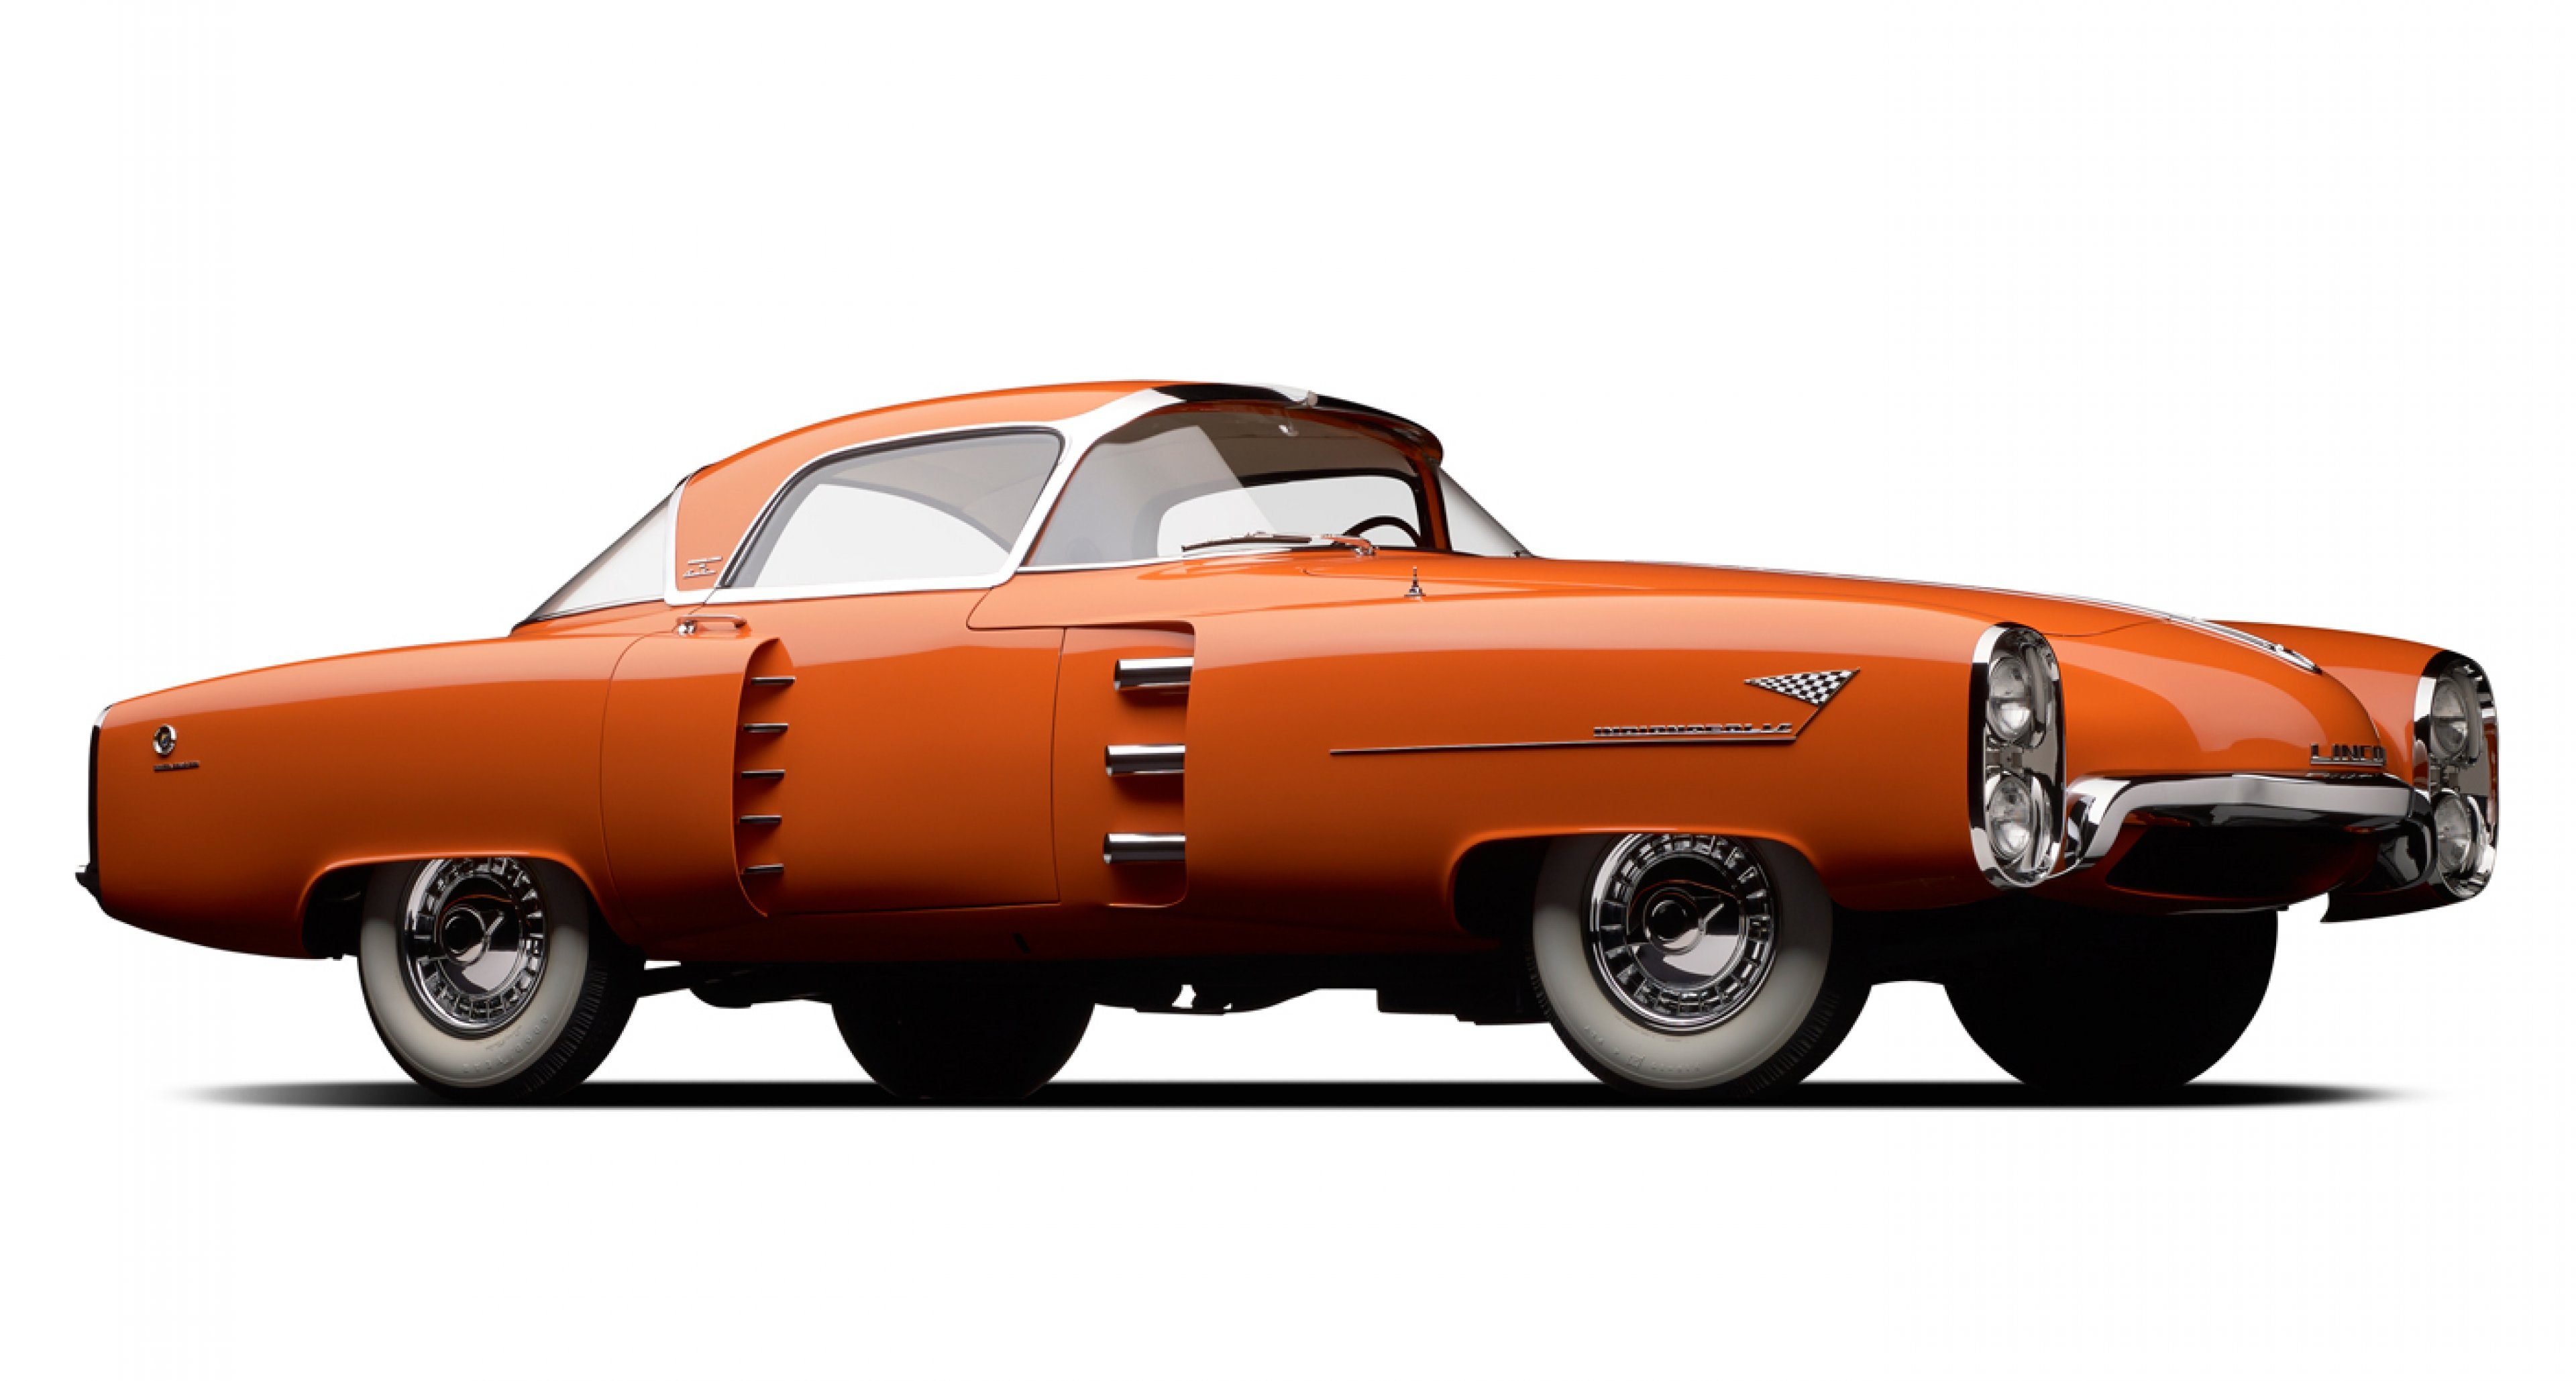 1955 Lincoln Indianapolis Boano. Collection of James E. Petersen, Jr. Image © 2015 Michael Furman